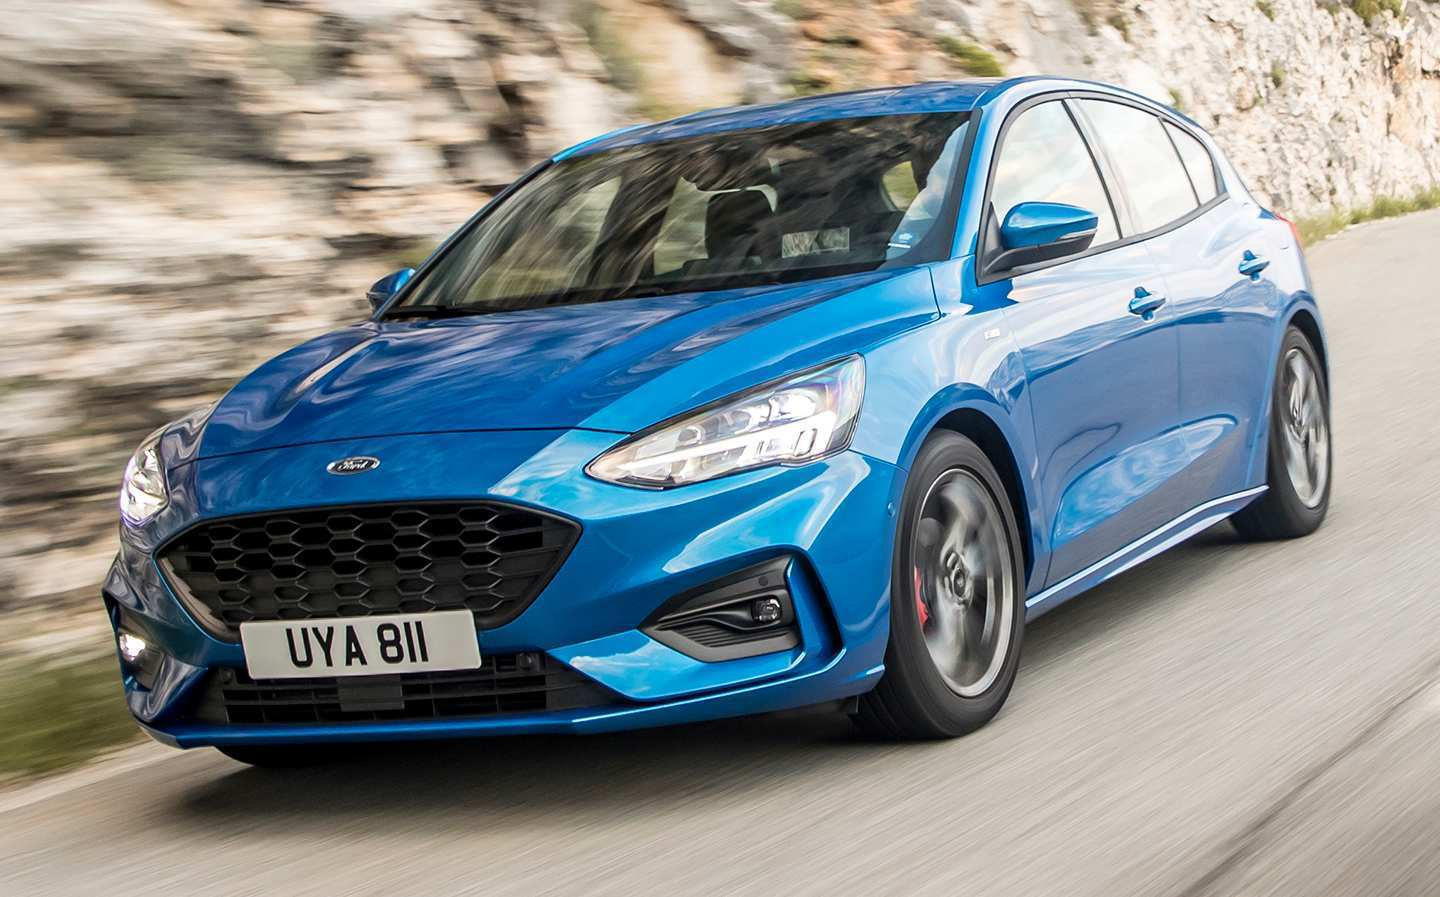 17 Best Review 2019 Ford Focus St Line Style for 2019 Ford Focus St Line